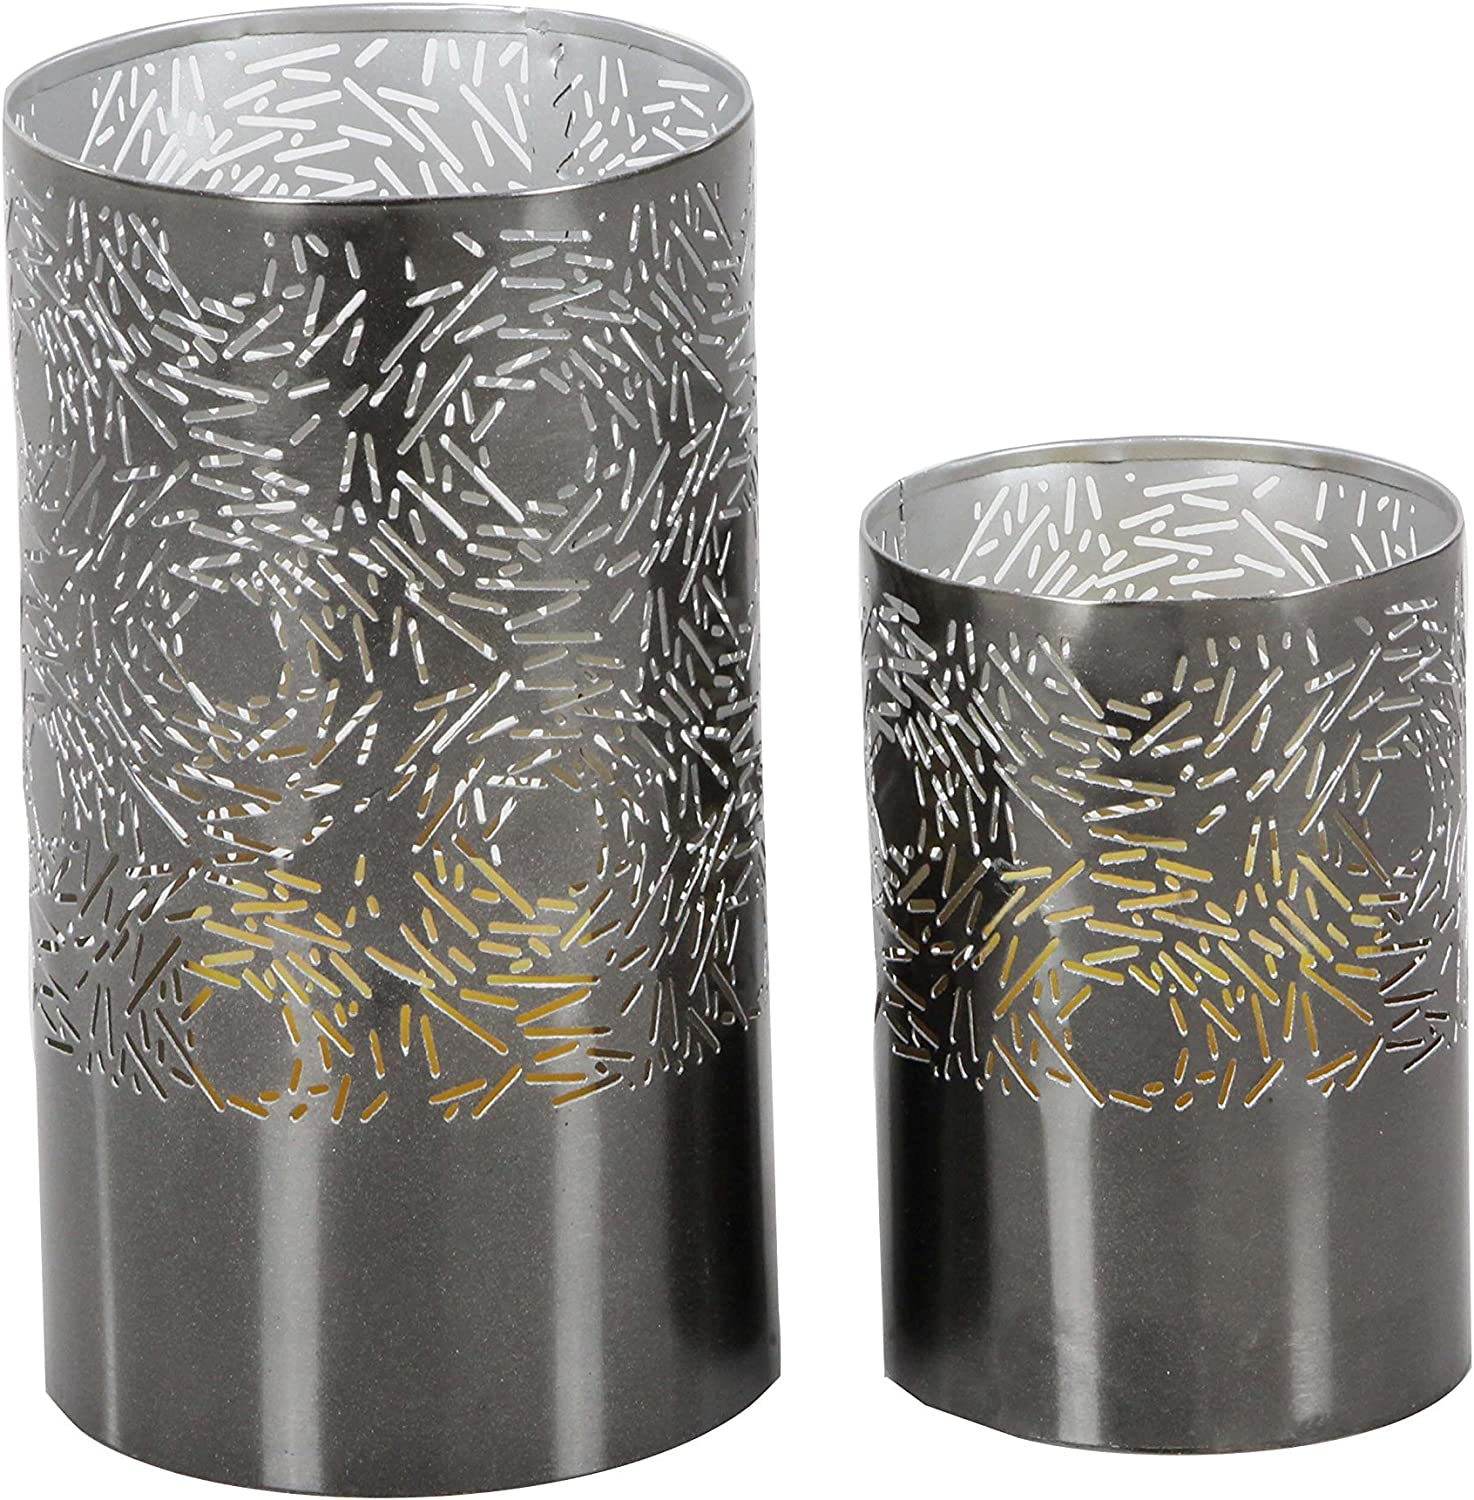 Deco 79 57361 Soldering Iron Cylindrical Candle Holders Popularity 6